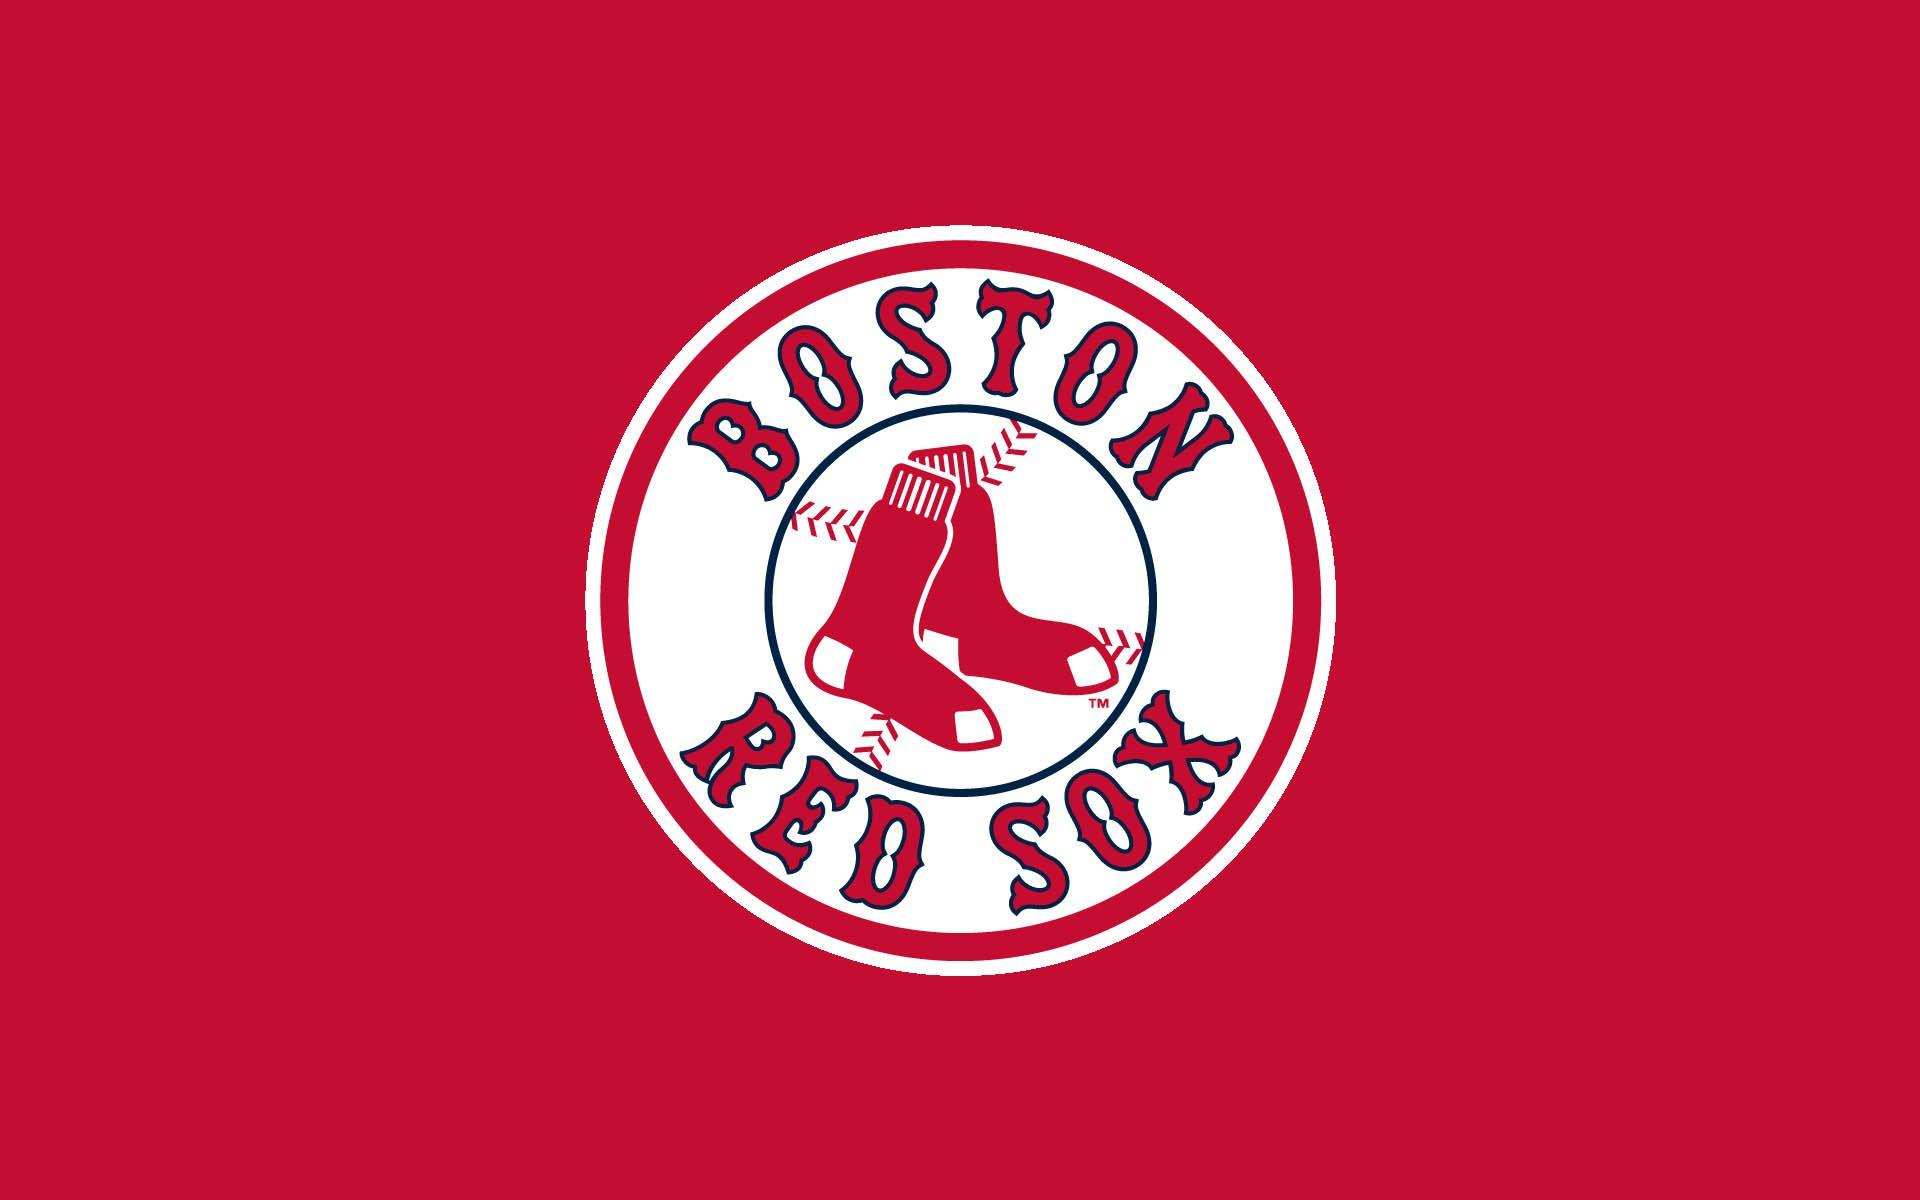 1920x1200 - Boston Red Sox Wallpaper Screensavers 50